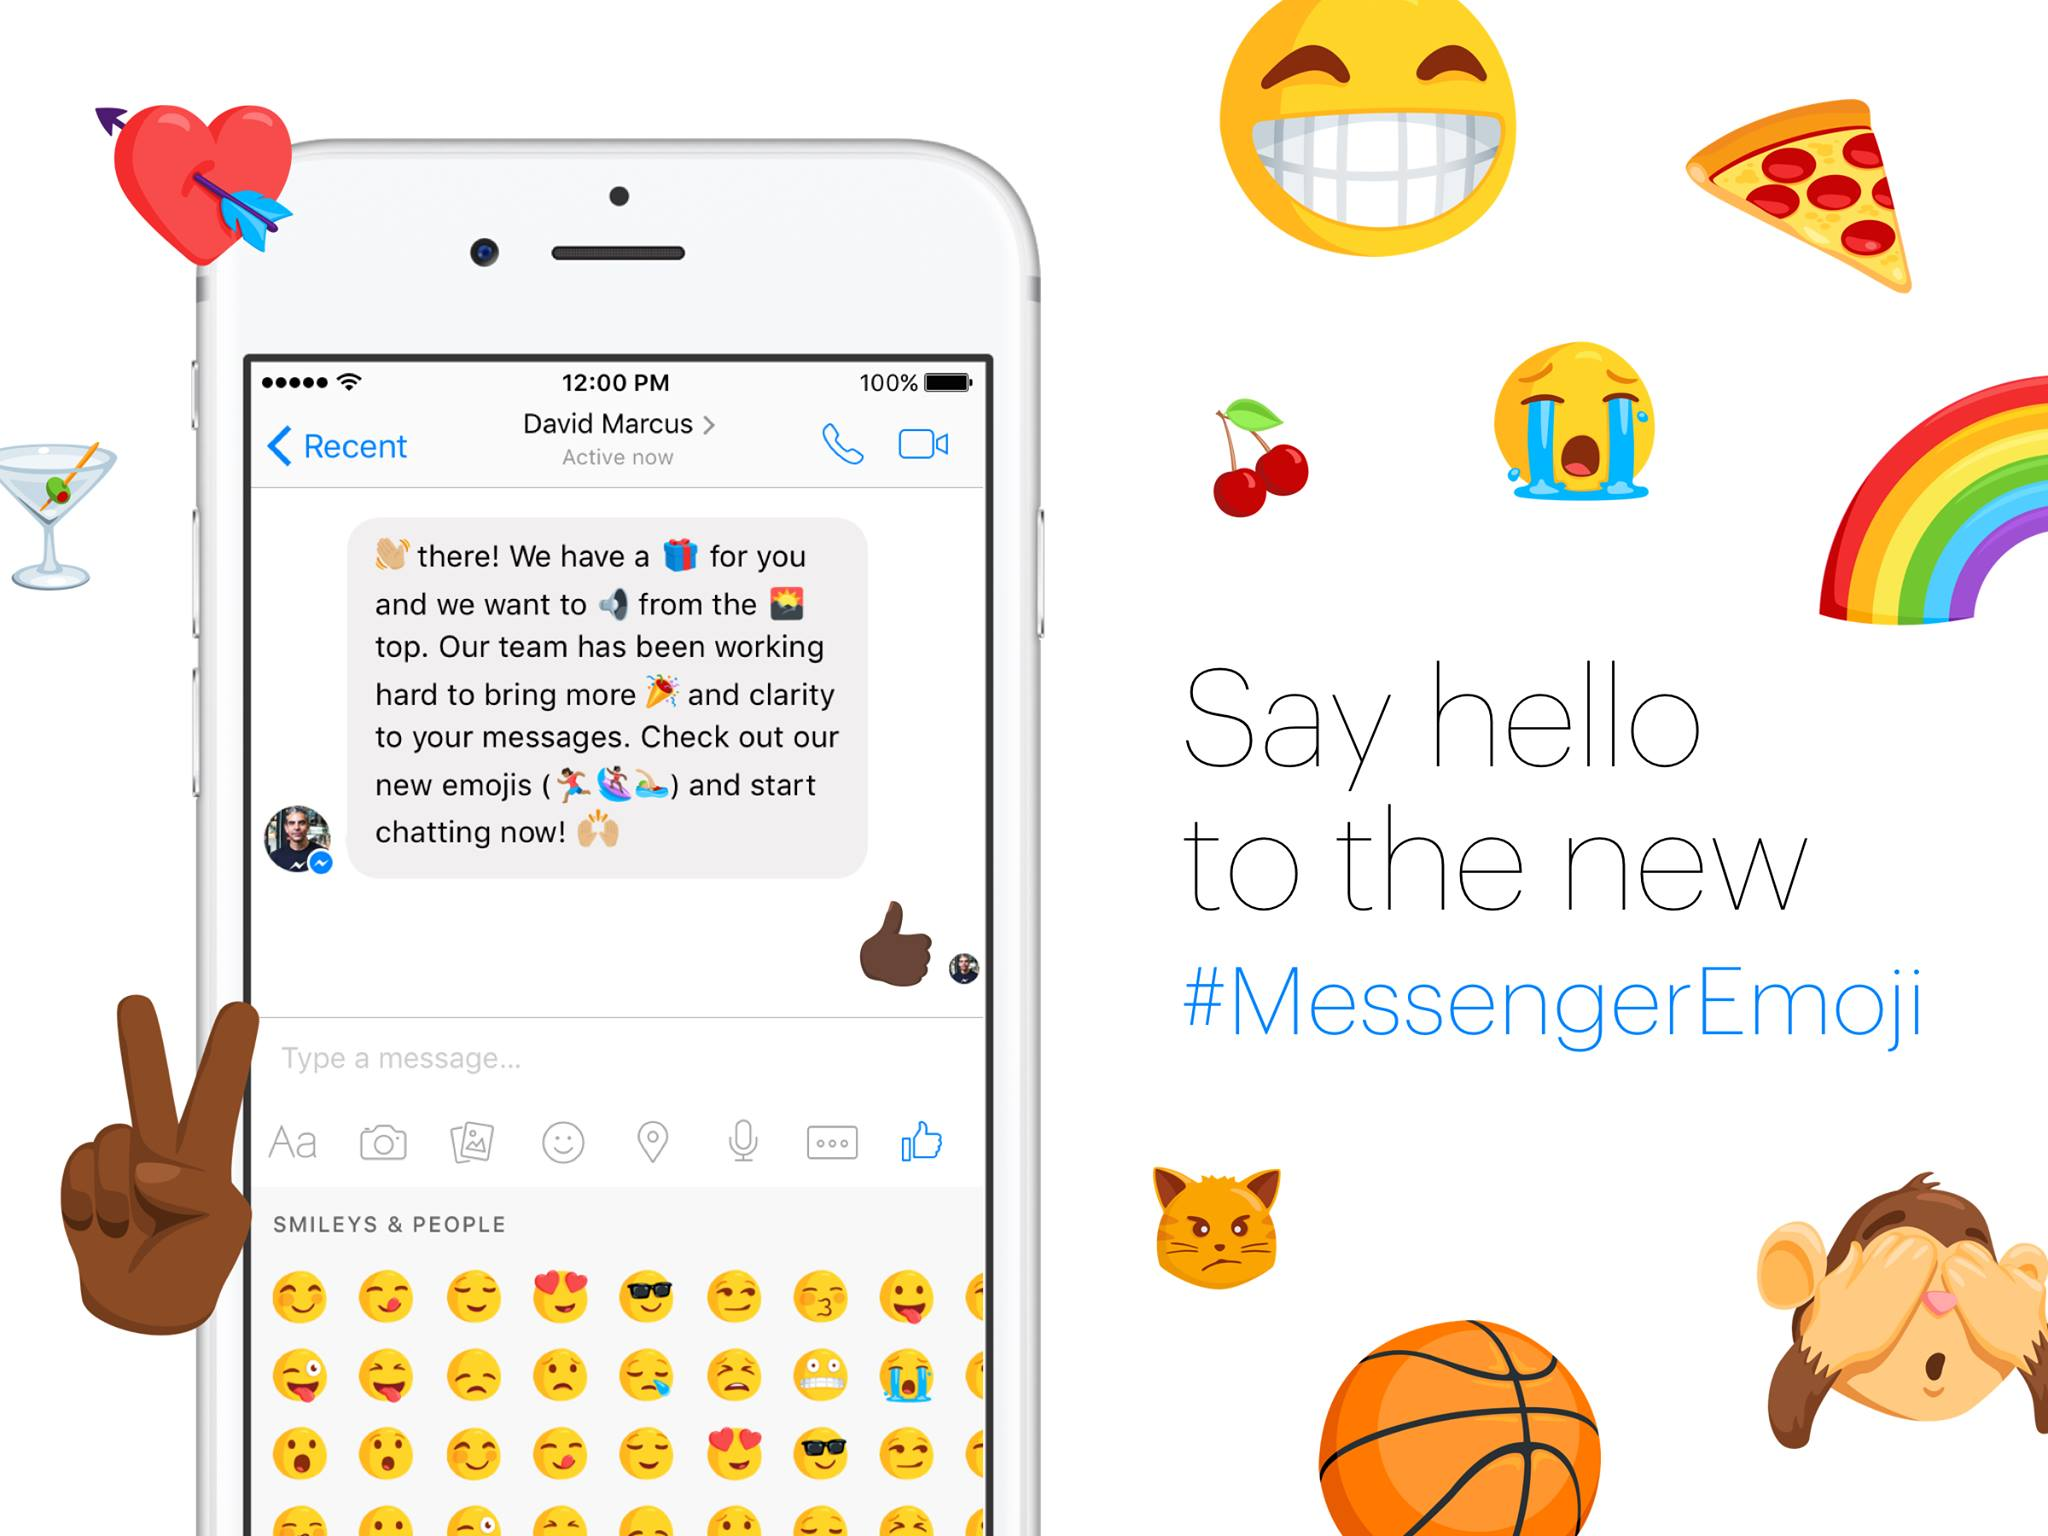 Facebook has added over 1,500 new emoji characters to Messenger